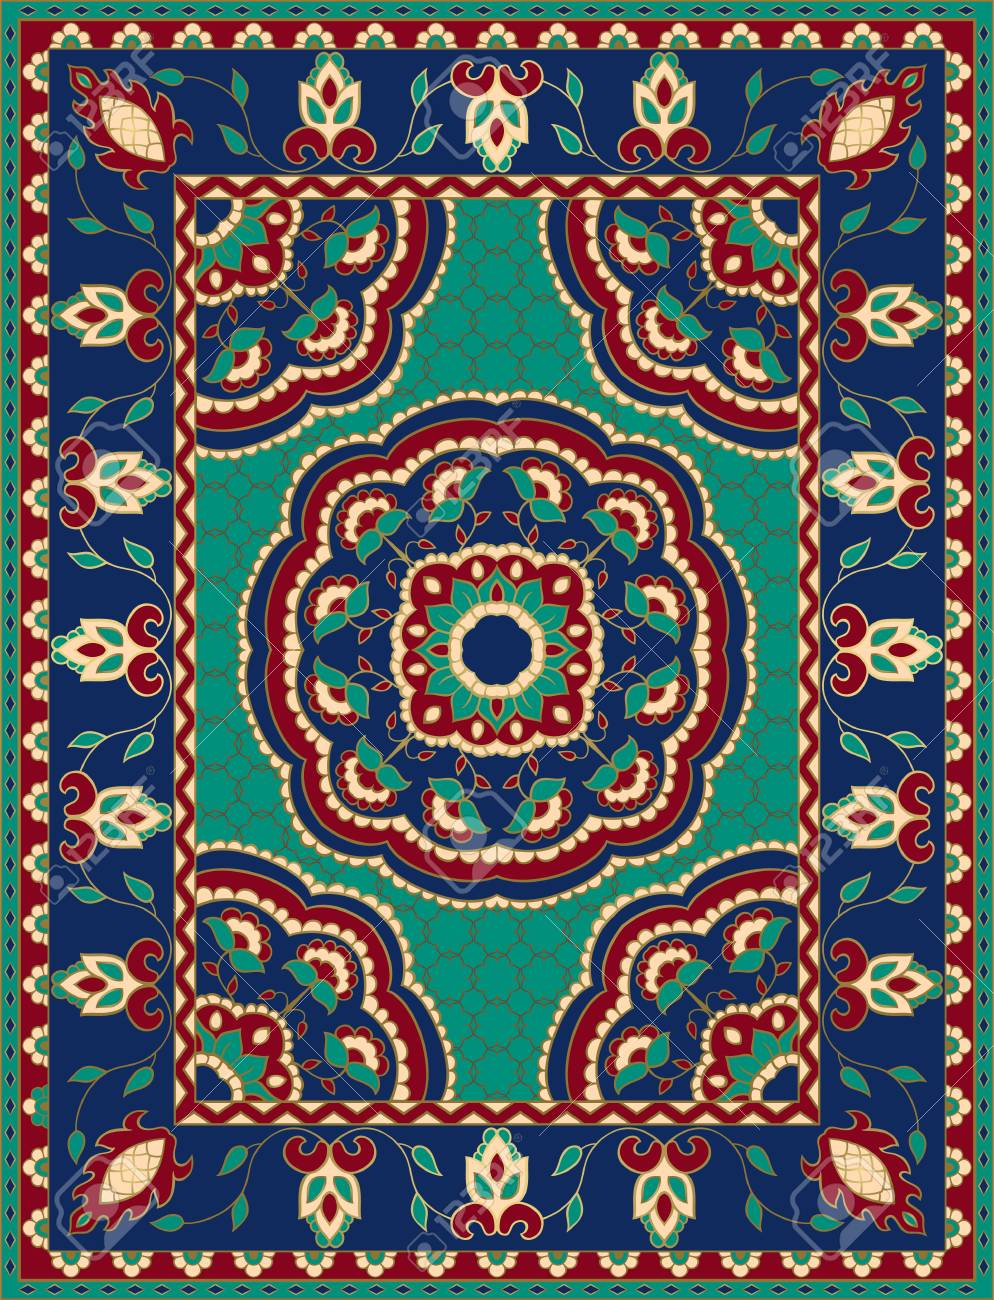 Colorful template with mandalas for carpet, textile. Oriental floral pattern with frame. - 125581312